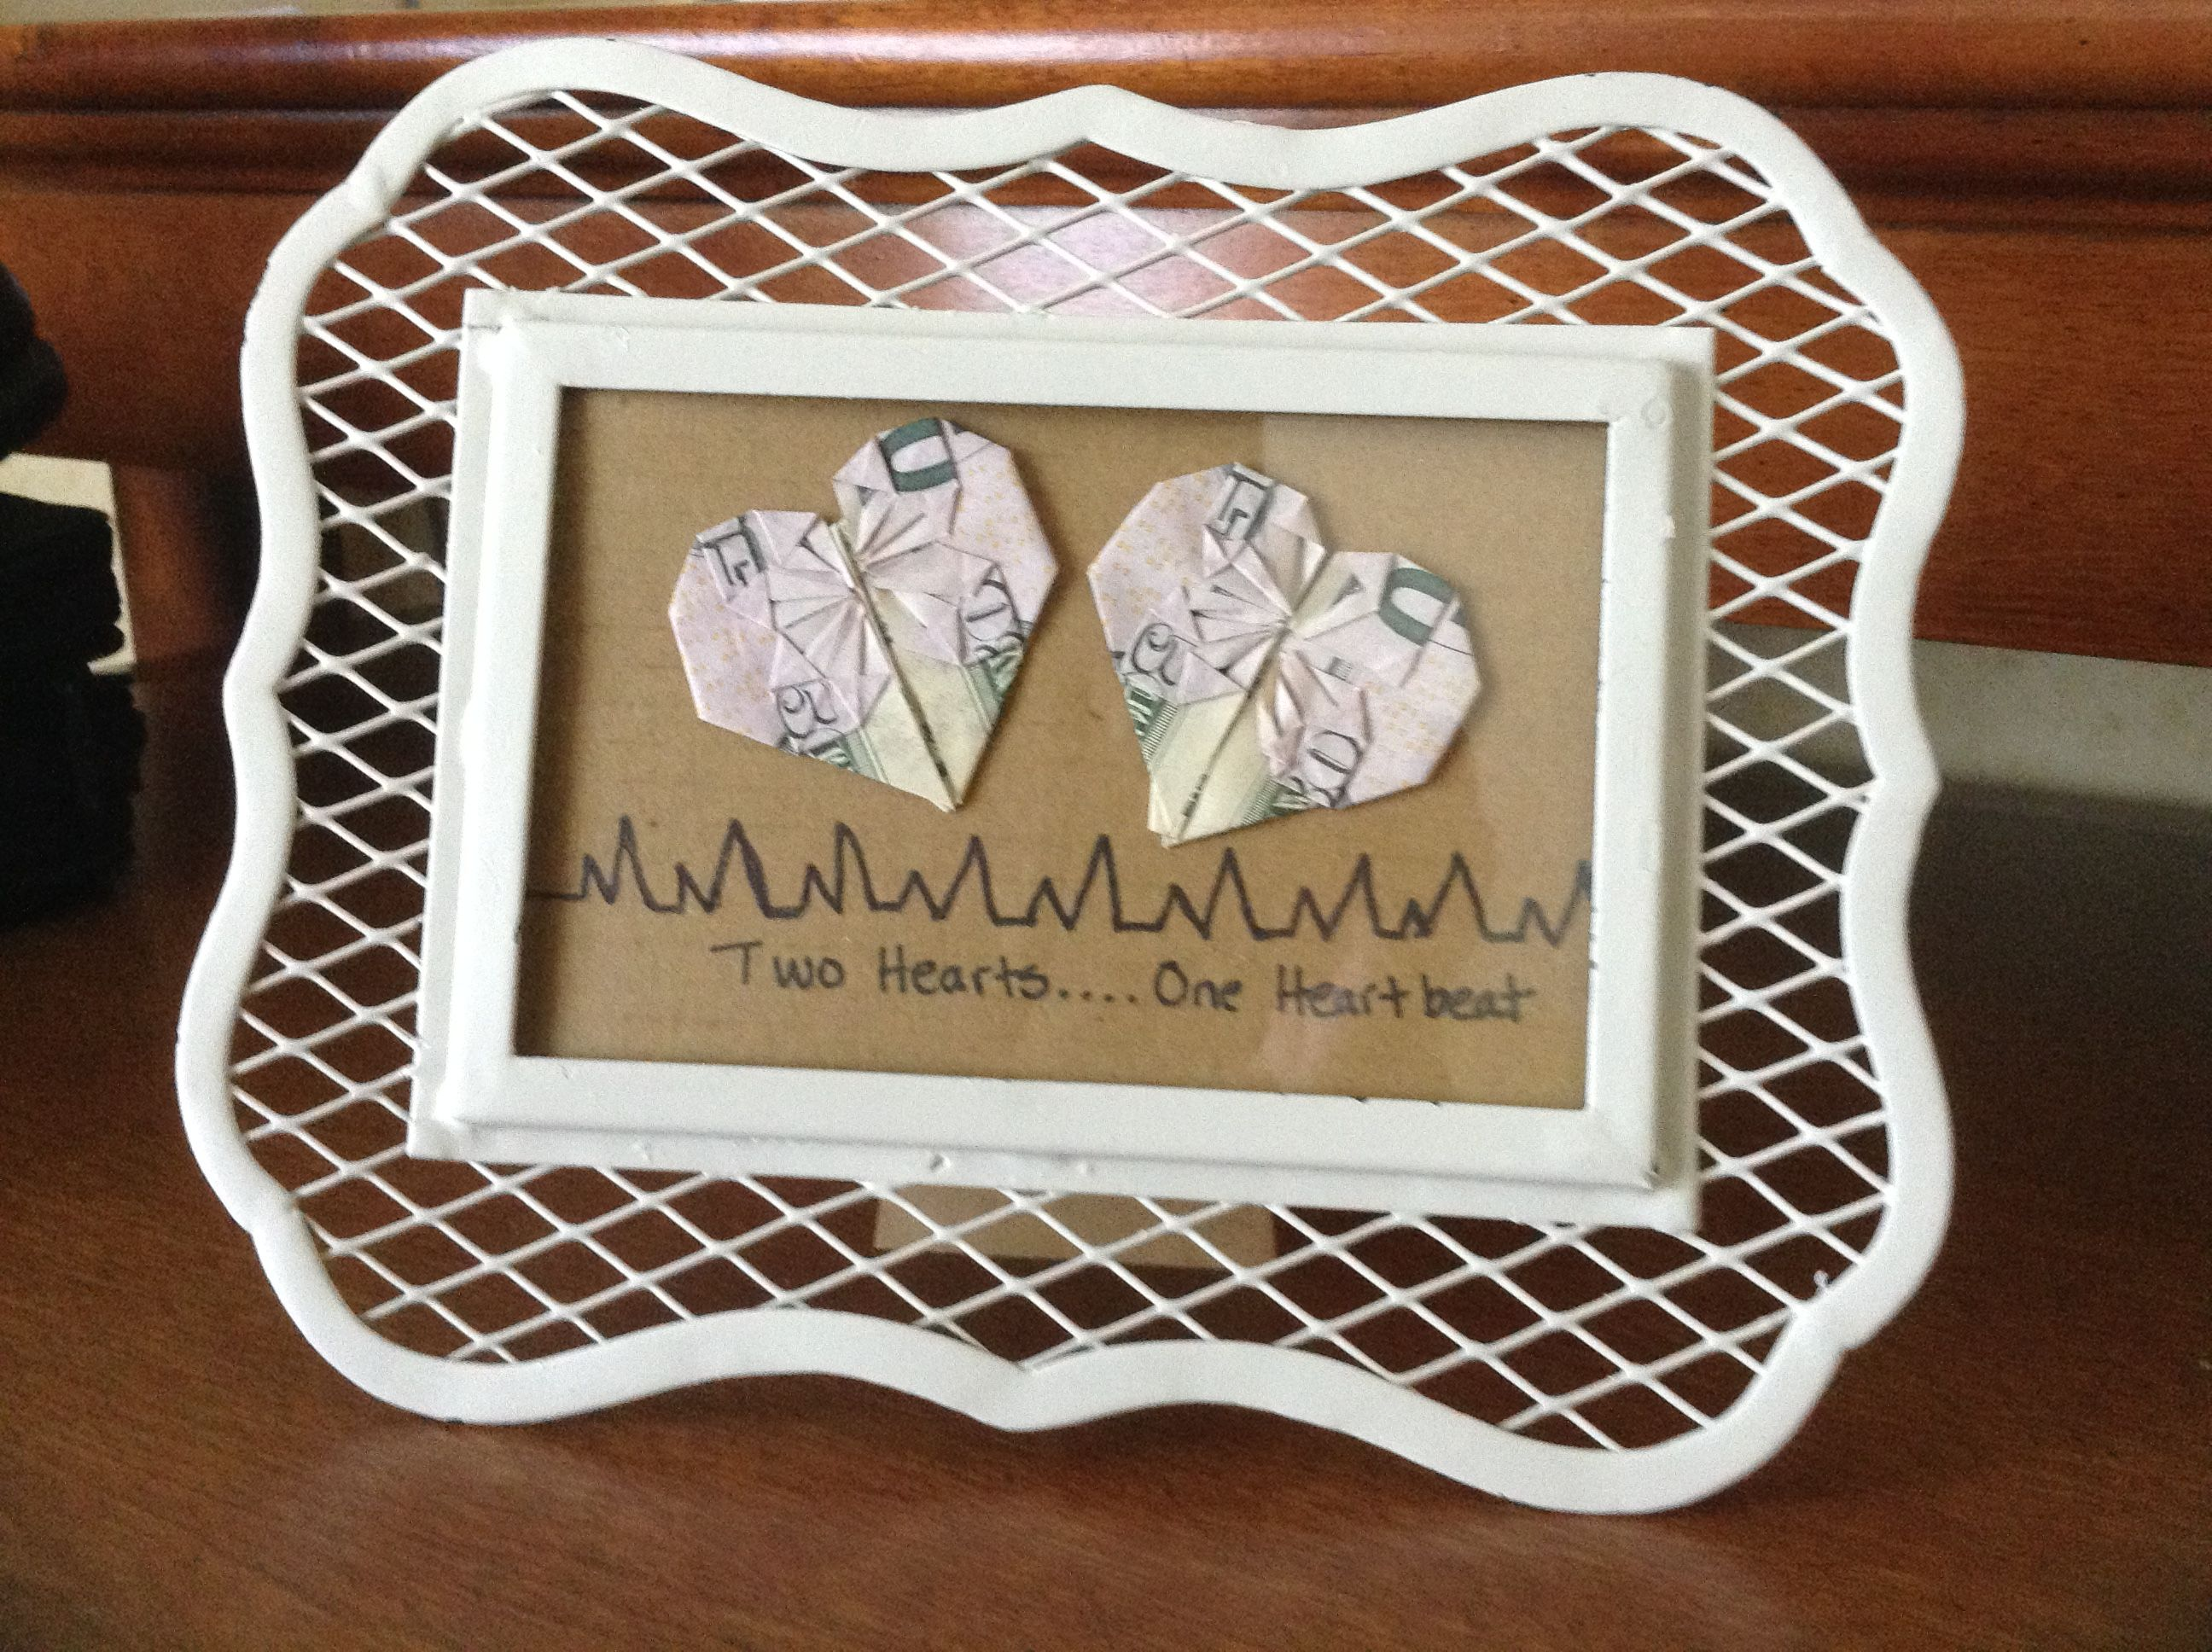 A last minute wedding gift. A great project to expand and